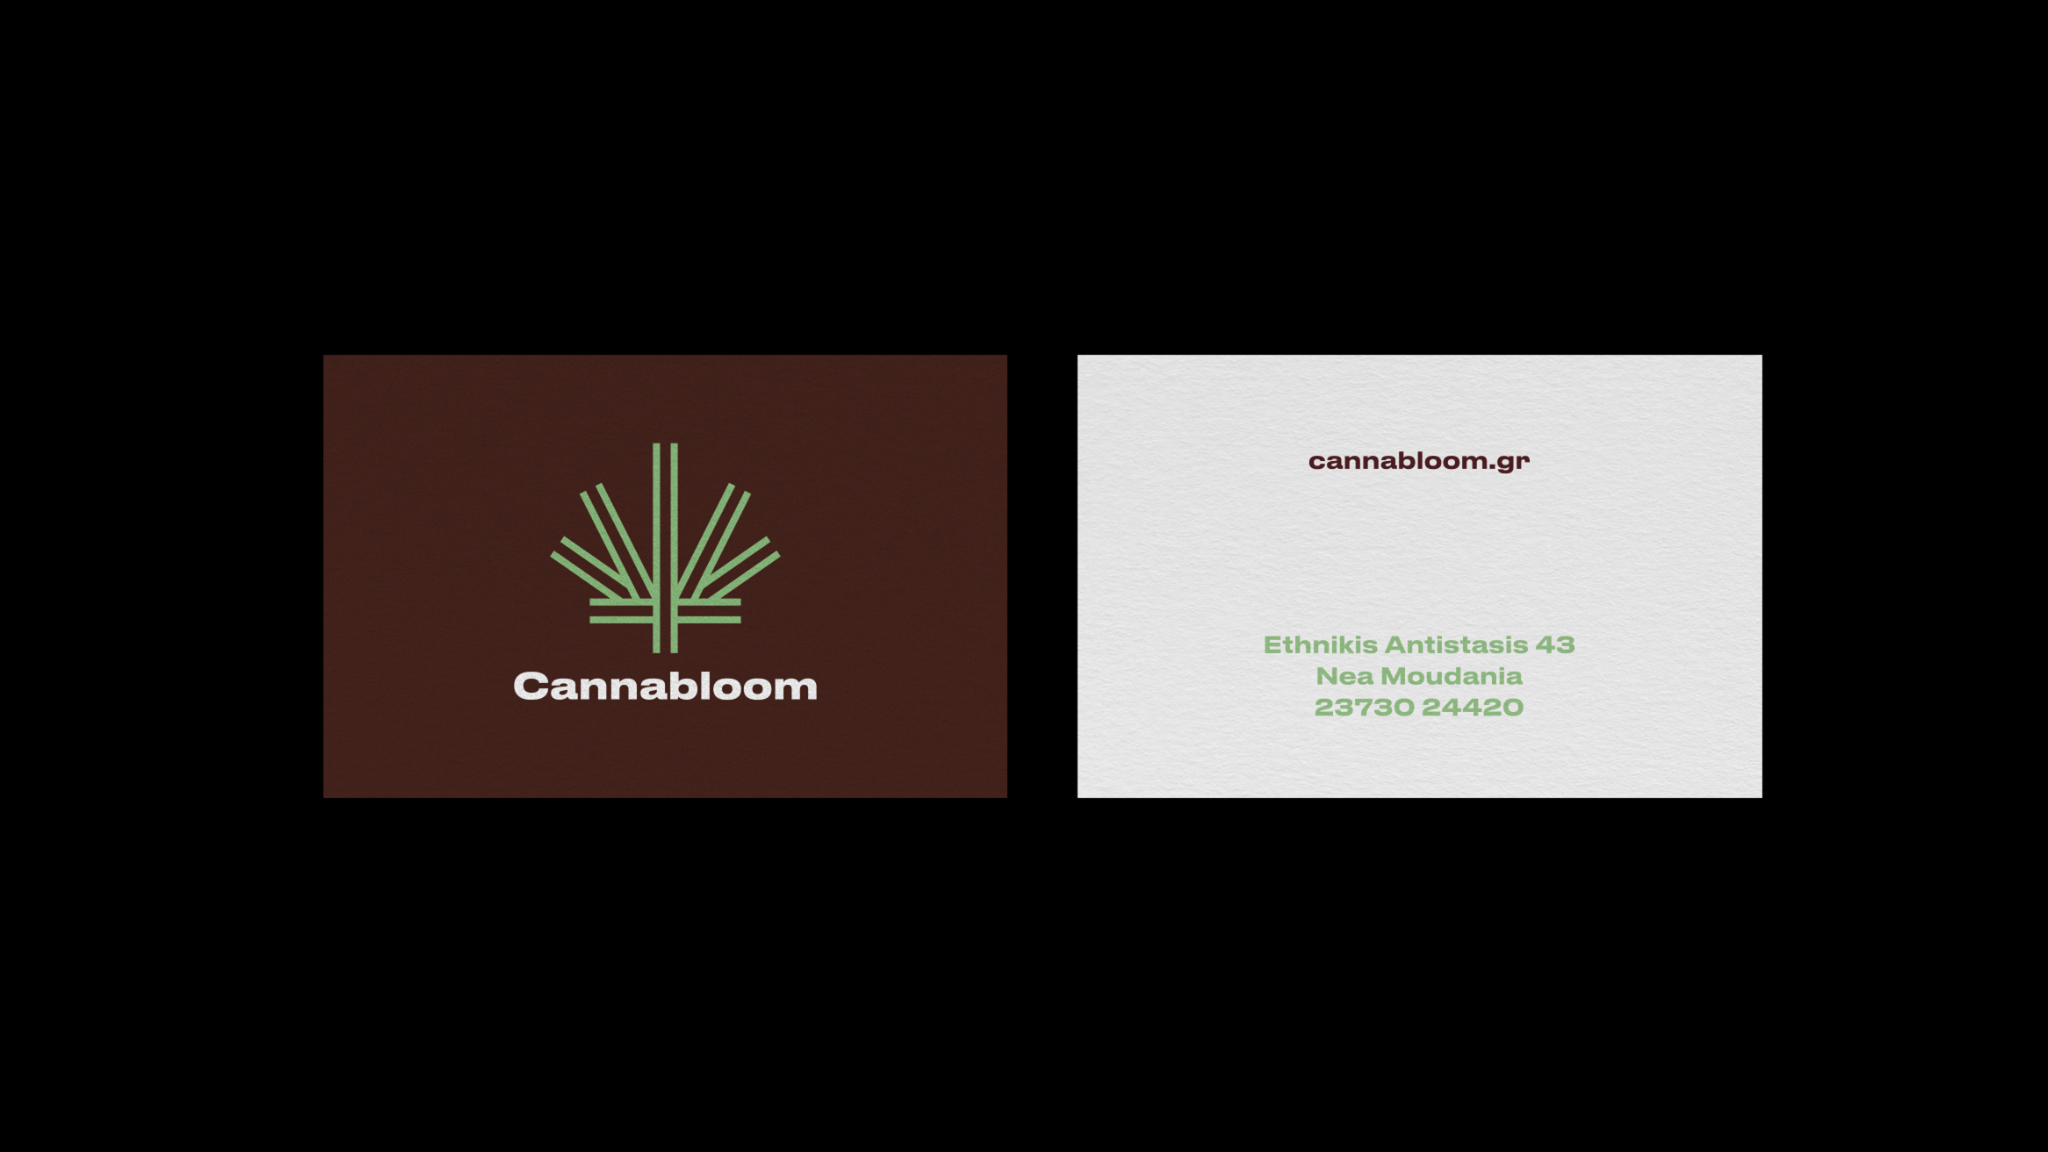 CANNABLOOM_BUSINESS_CARDS_ORIGHT_12@2x